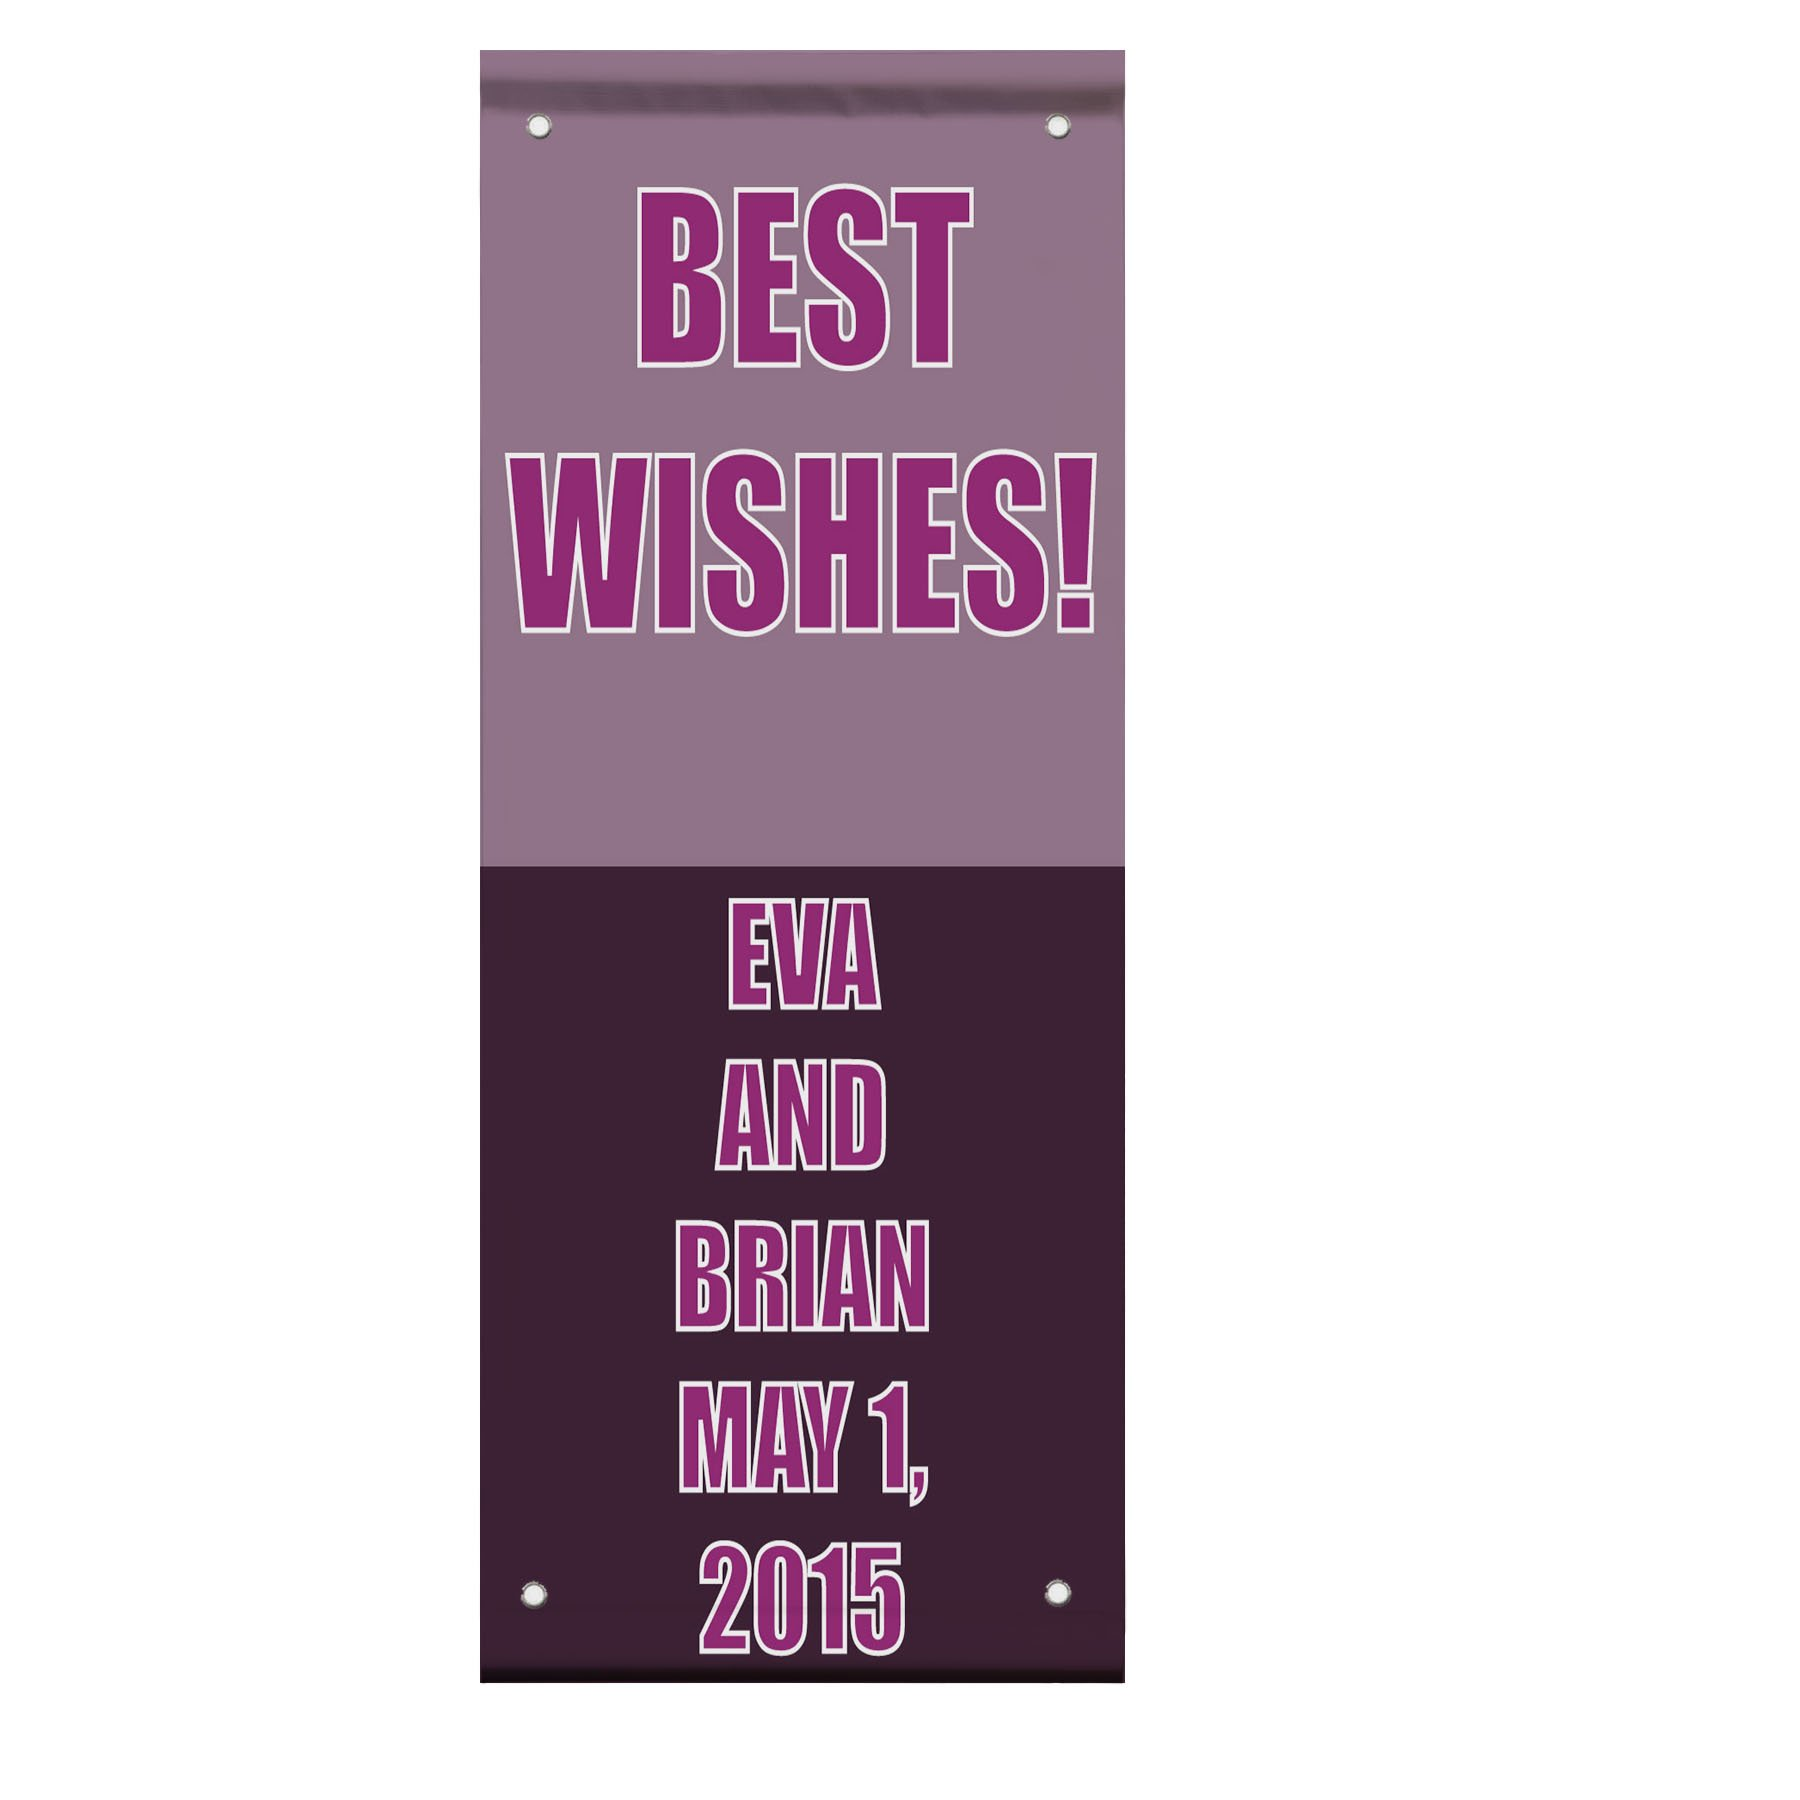 Wedding Marriage Best Wishes Wedding Party Custom Double Sided Pole Banner Sign 36 in x 48 in w/ Pole Bracket